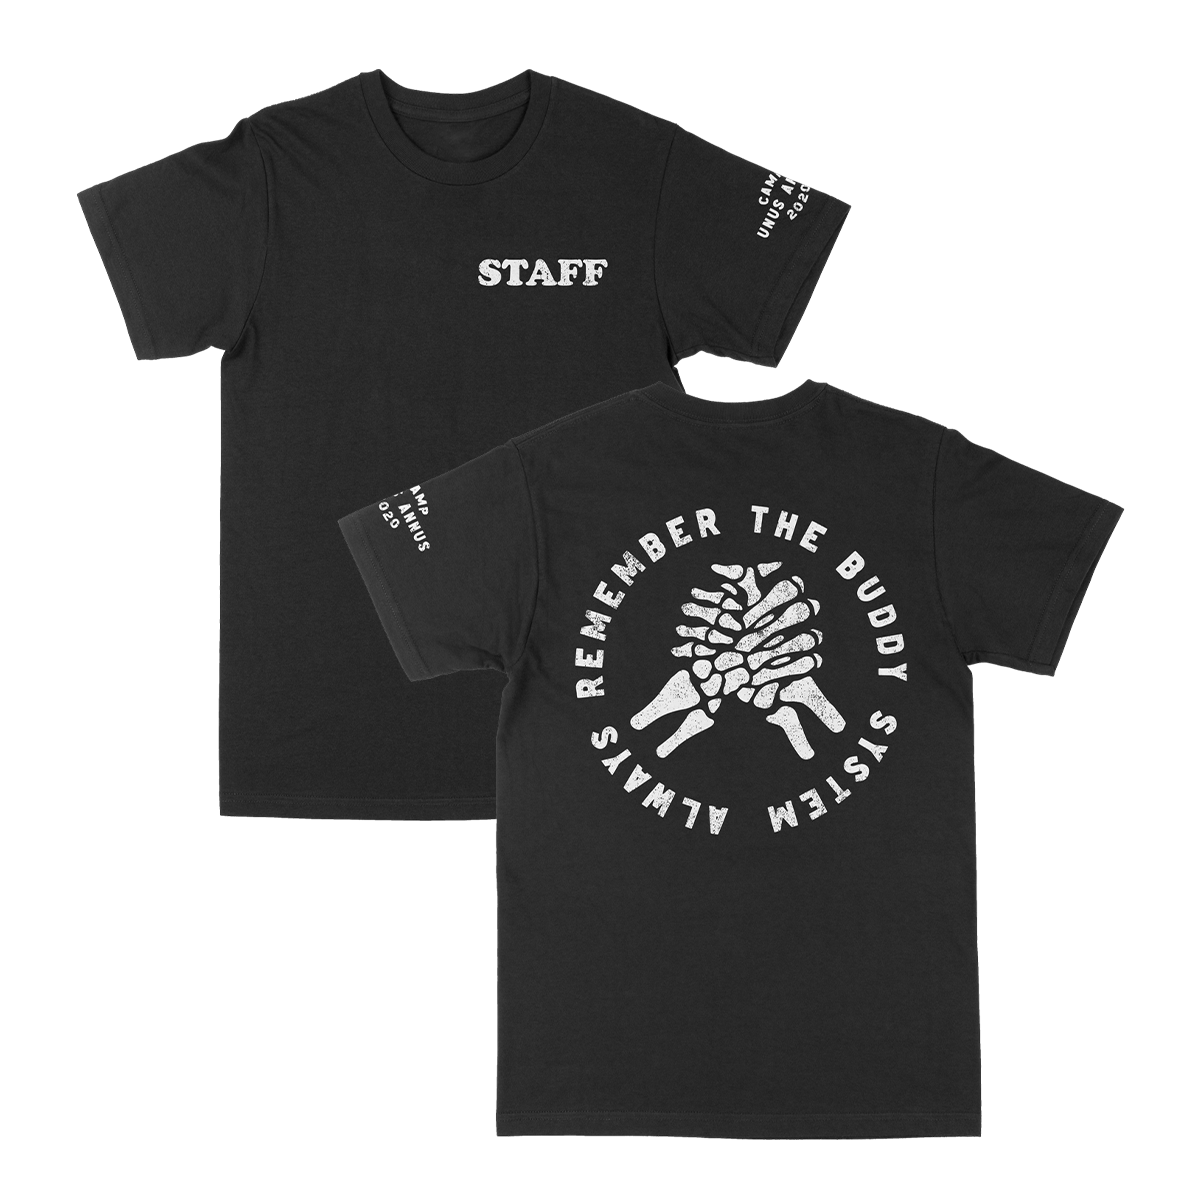 Camp Unus Staff Tee - Black